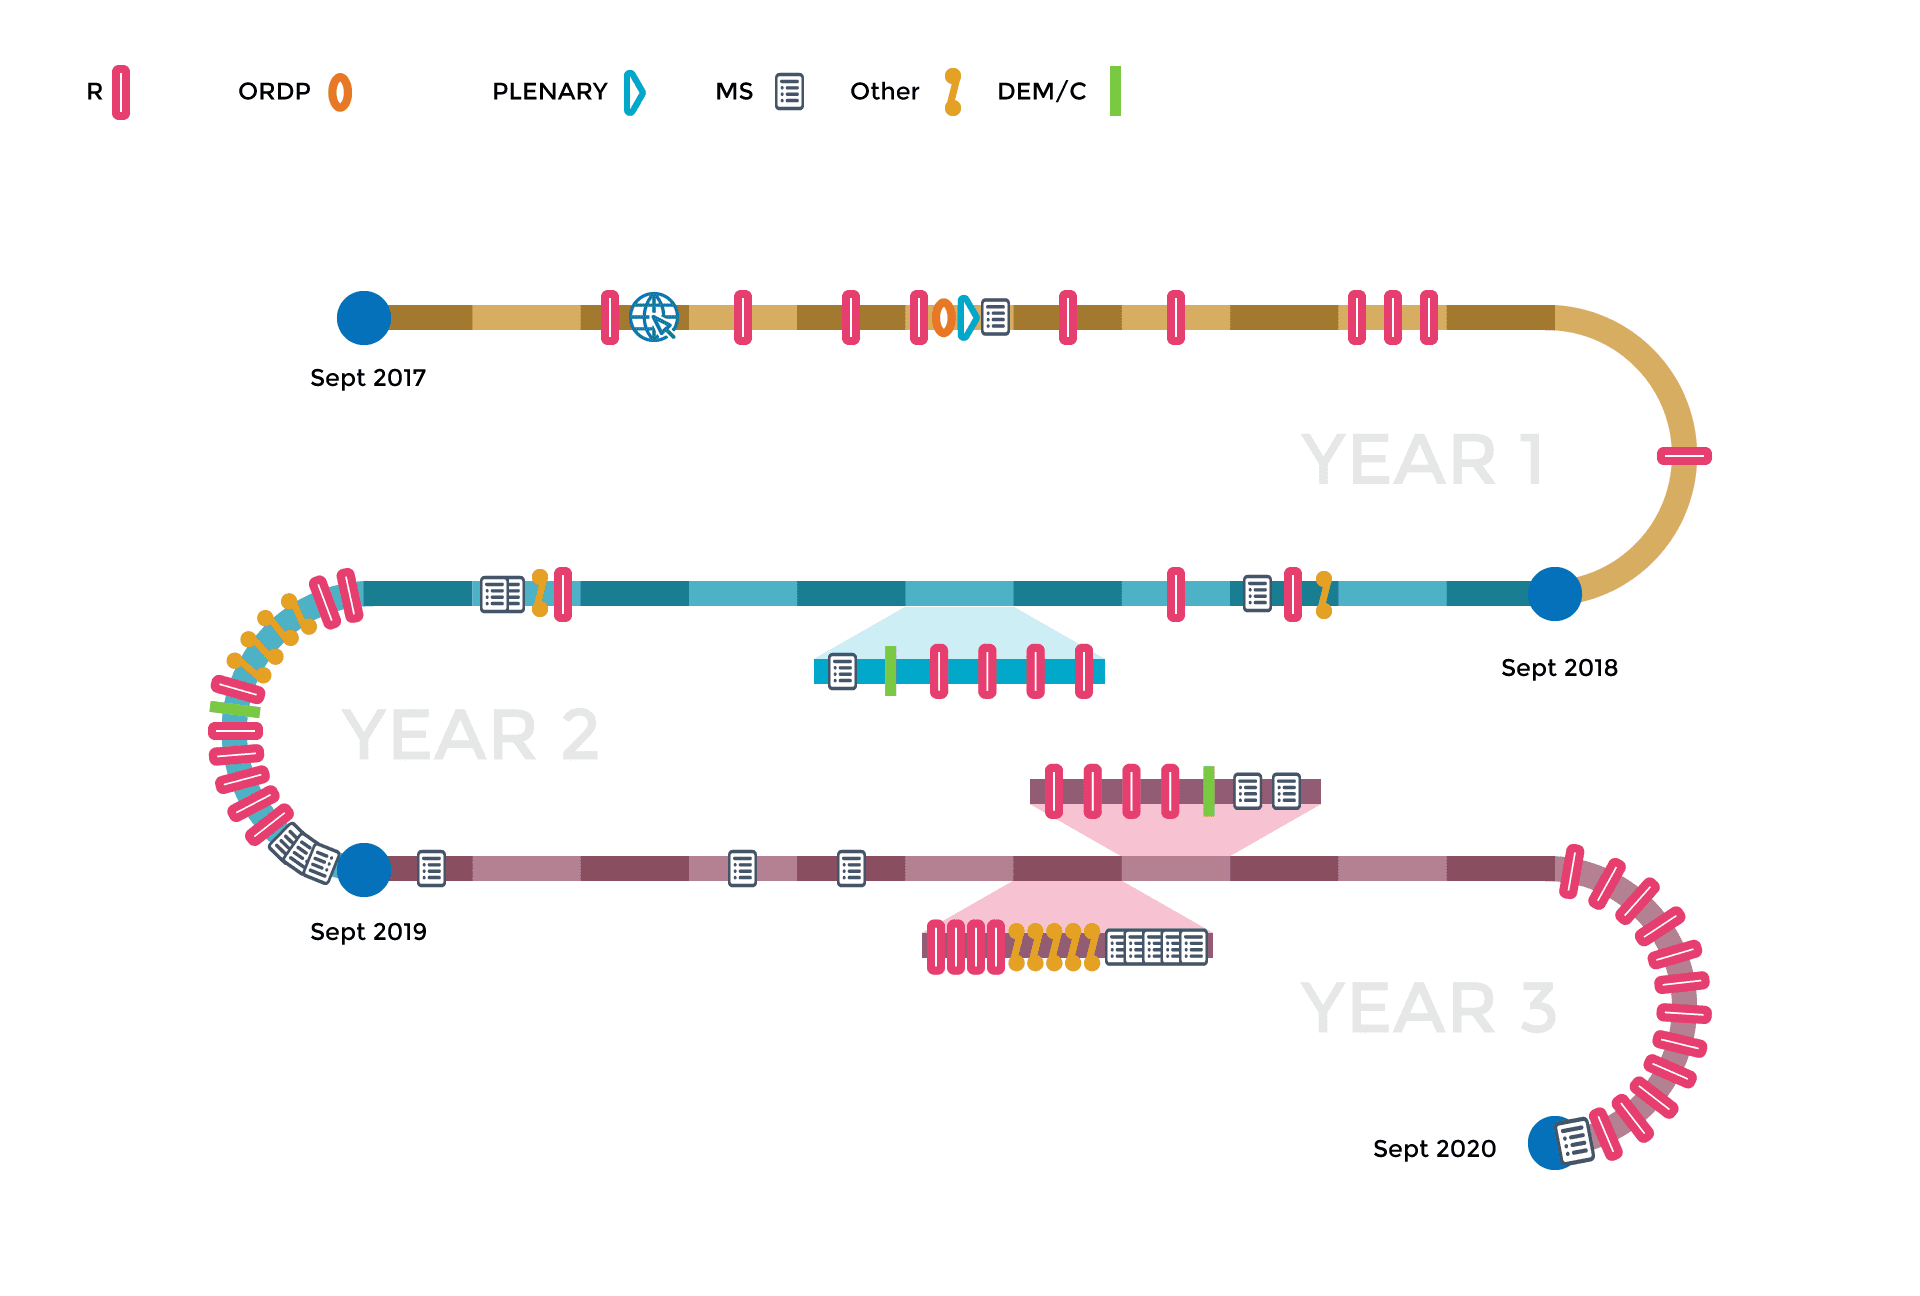 IN-PREP Project timeline